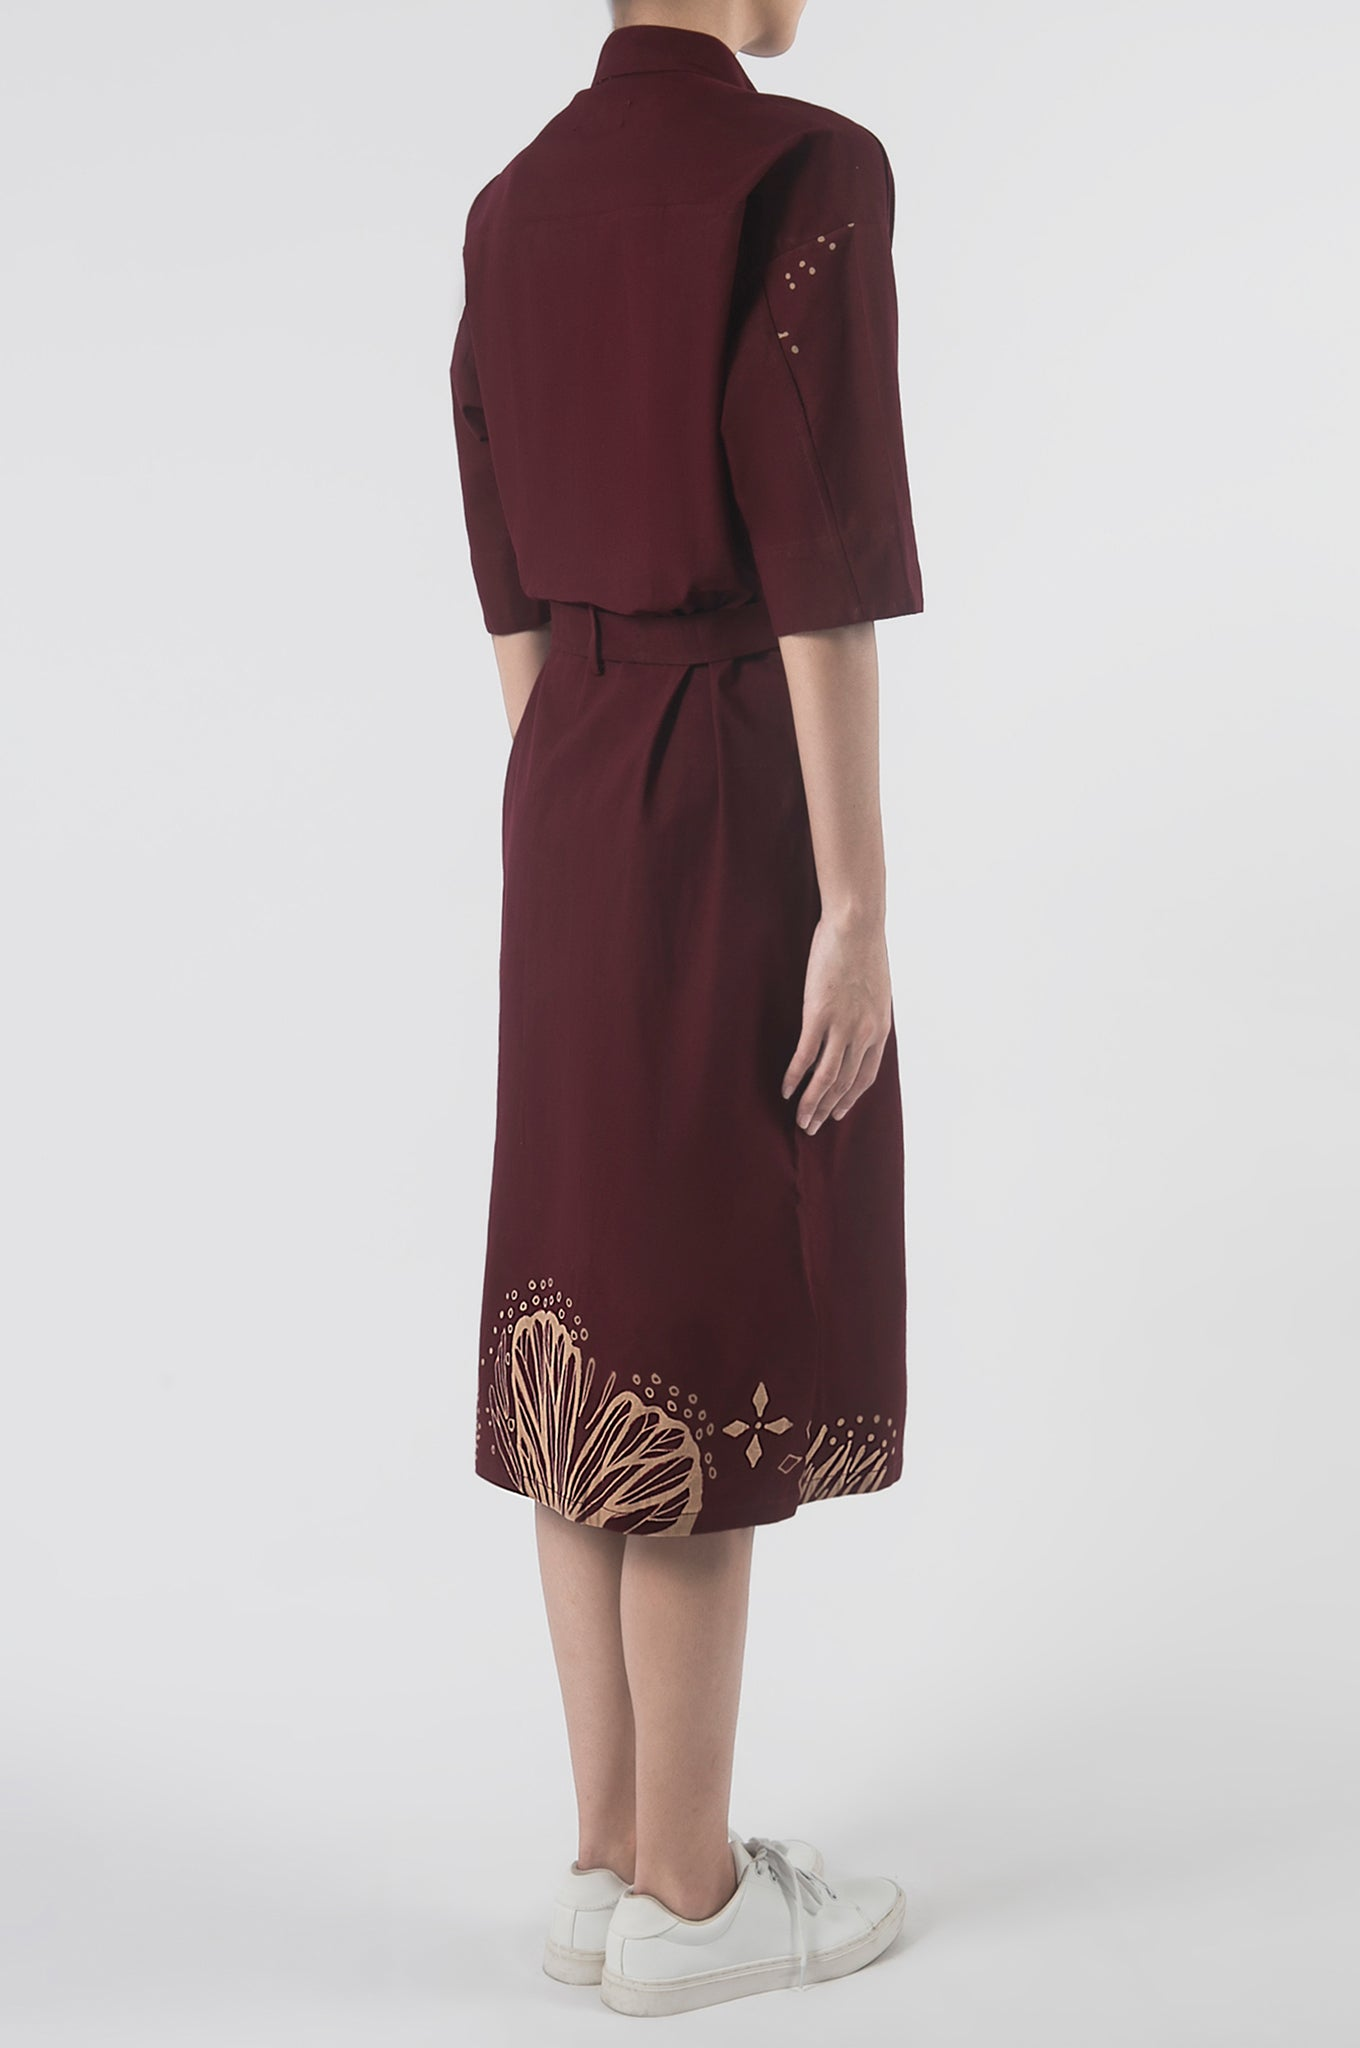 Kupu Burgundy Shirt Dress